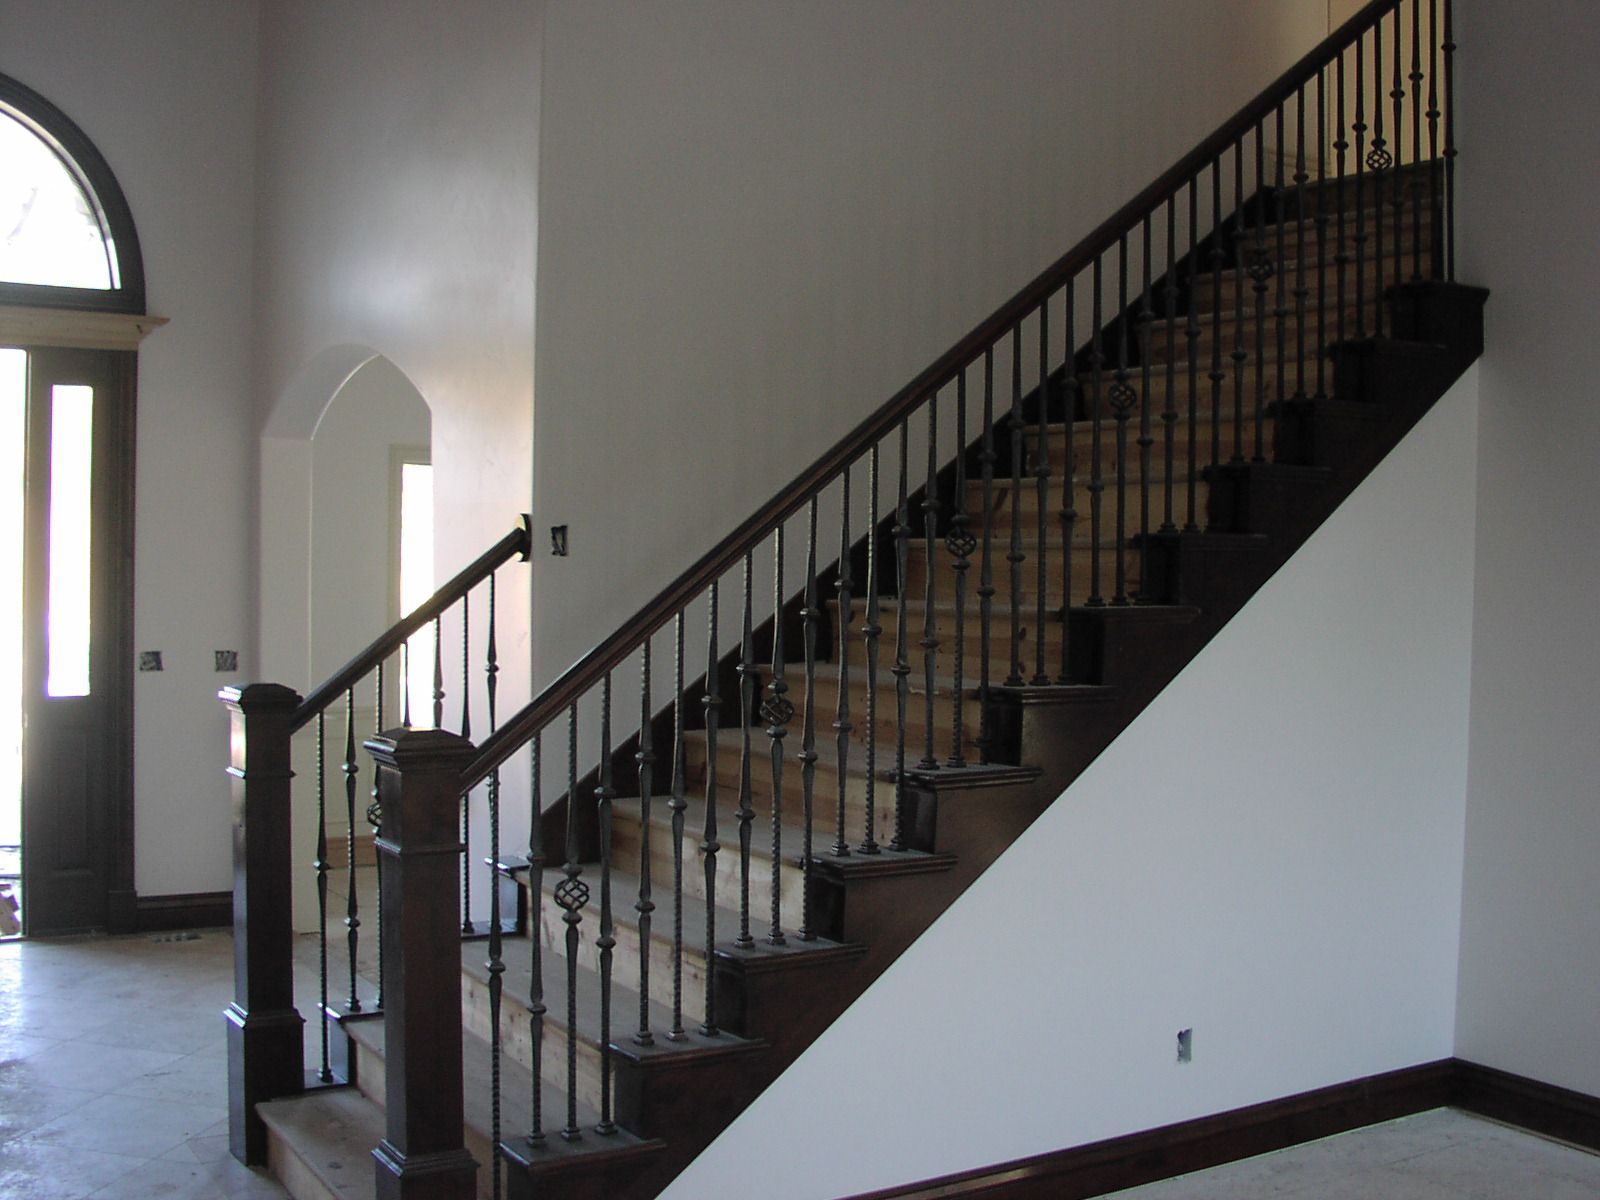 Best Stair Railing Bing Images Wood Stairs With Carpet In The 400 x 300